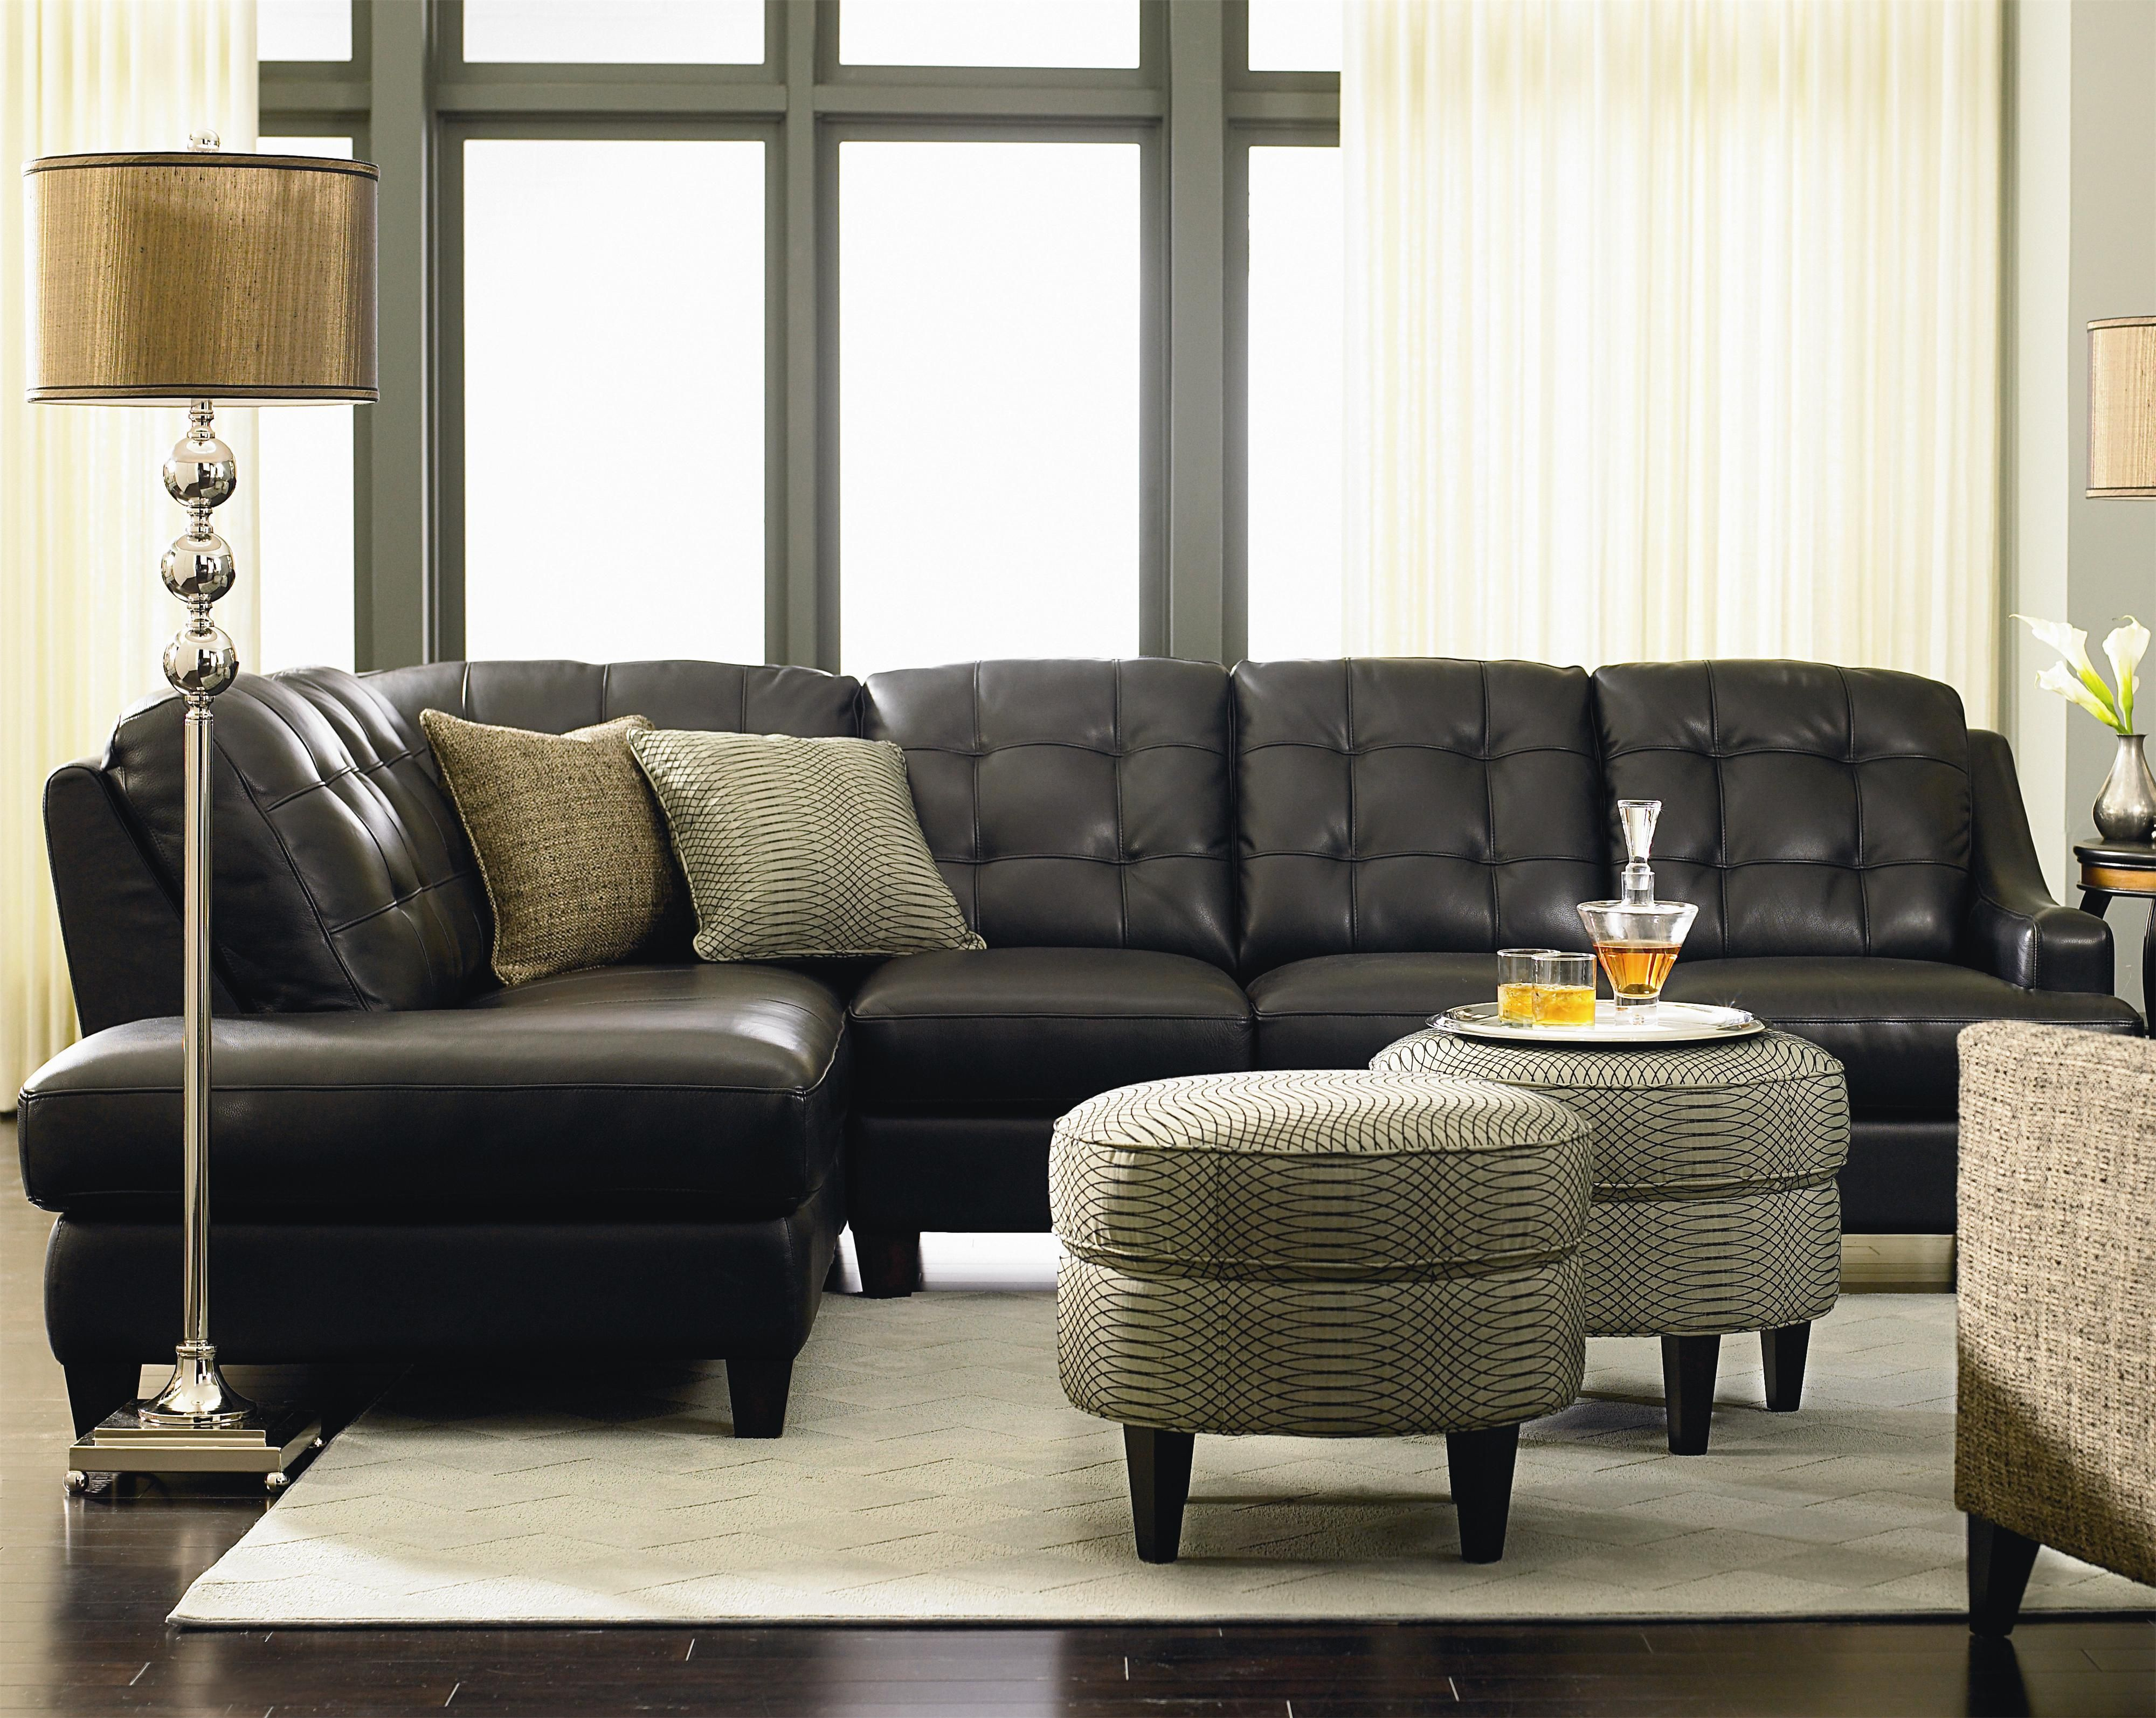 Mercer by Bassett - Darvin Furniture - Bassett Mercer Dealer Illinois. Mercer Left Chaise Leather Sectional ... : bassett leather sectional - Sectionals, Sofas & Couches